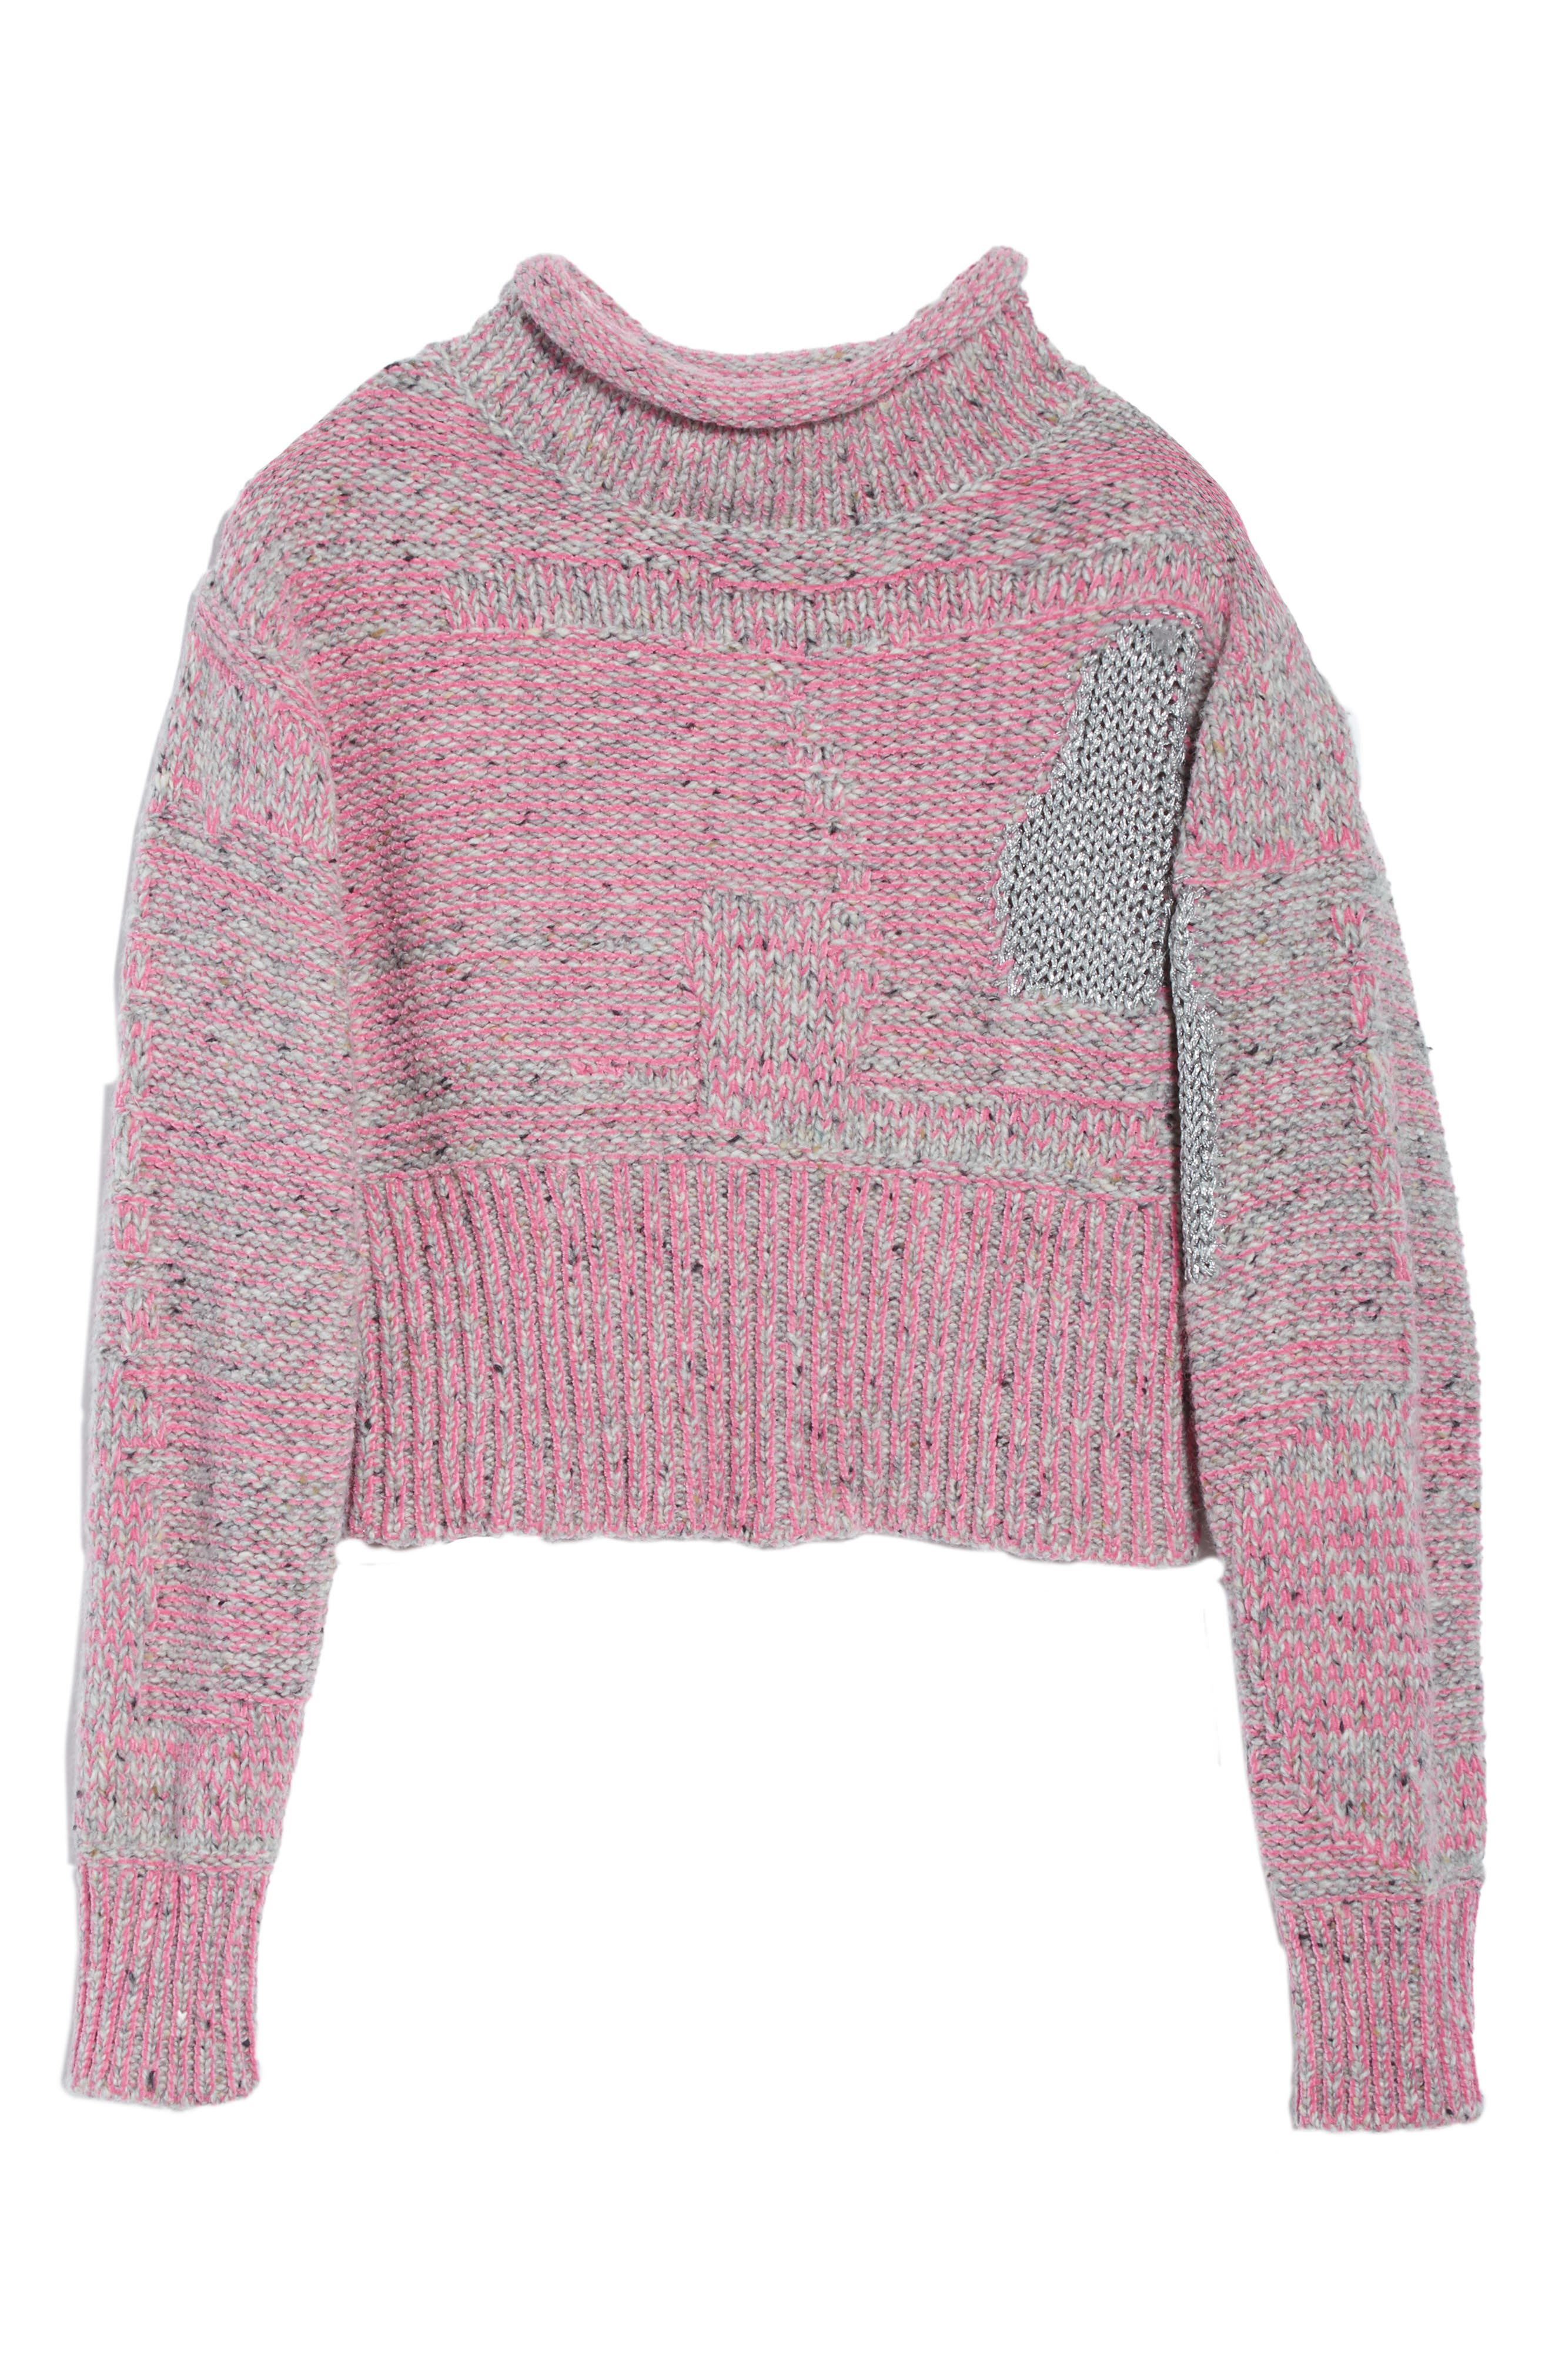 Wool Blend Funnel Neck Sweater,                             Alternate thumbnail 6, color,                             Candy Pink